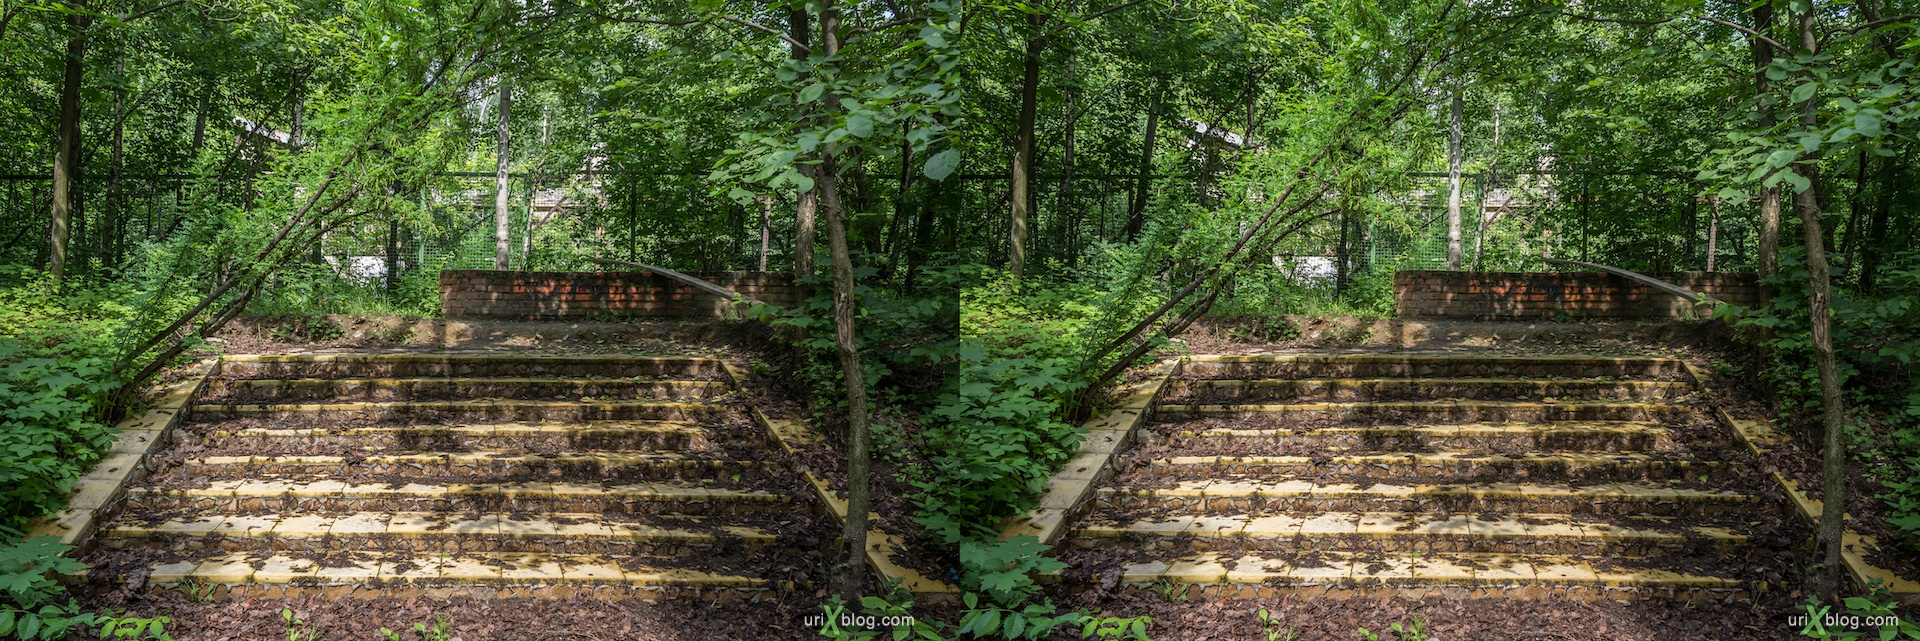 2013, old, abandoned, cafe, forrest, grass, bush, steps, fence, Sokolniki, Moscow, Russia, 3D, stereo pair, cross-eyed, crossview, cross view stereo pair, stereoscopic